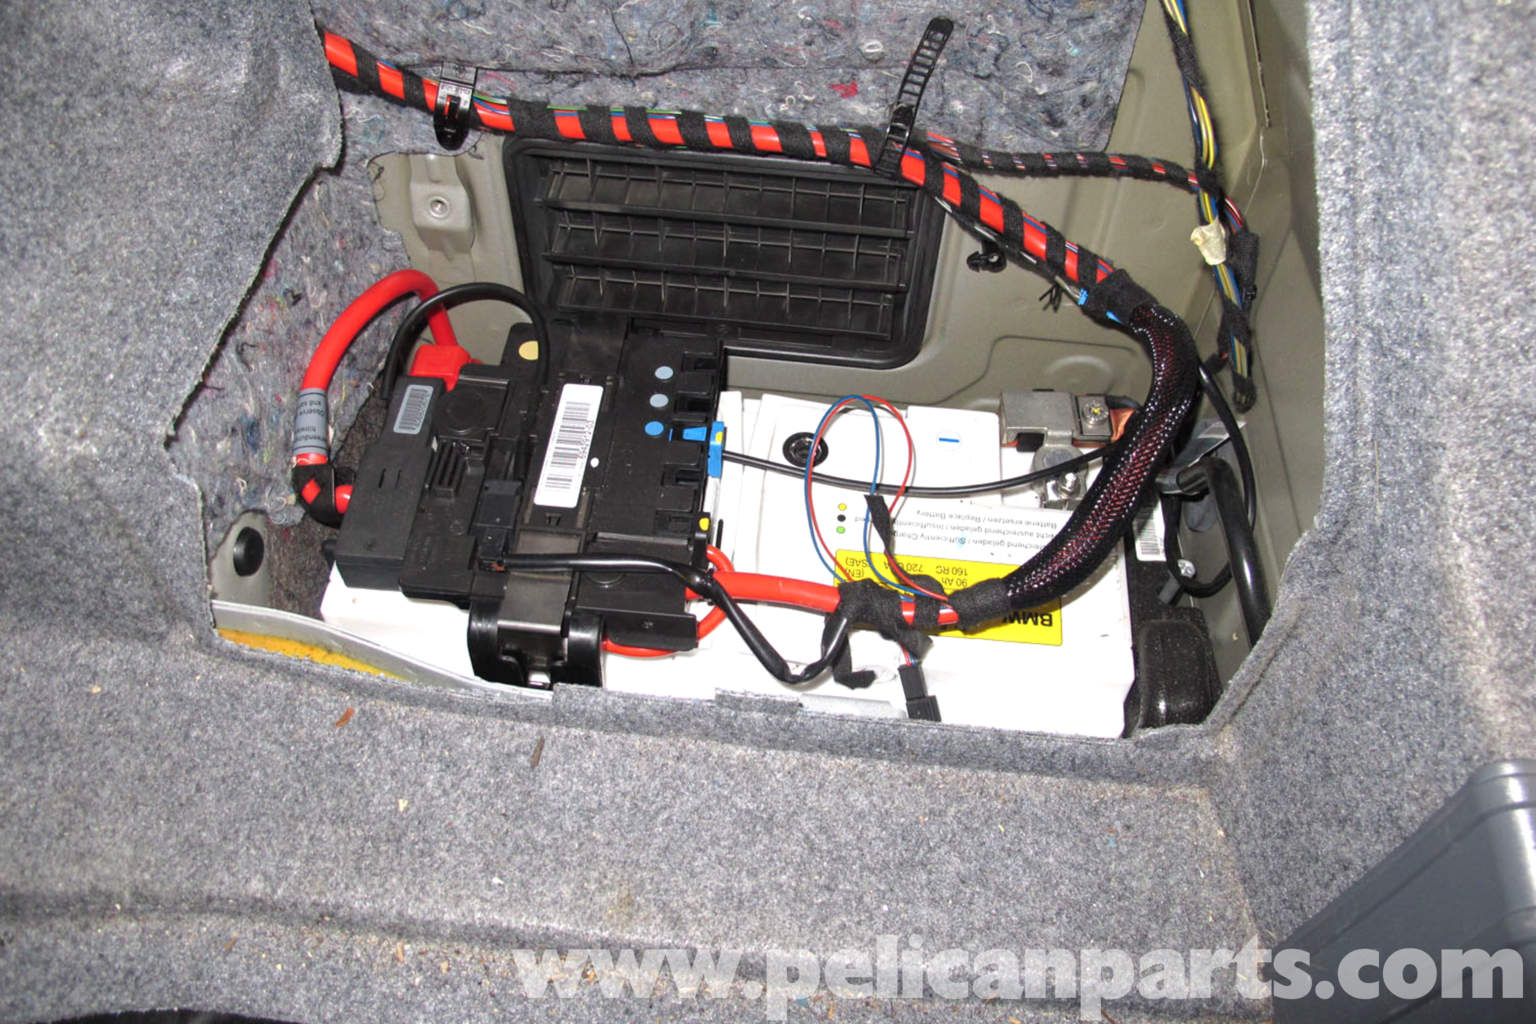 pic01 e90 m3 fuse box e39 fuse box wiring diagram ~ odicis e90 m3 fuse box location at arjmand.co